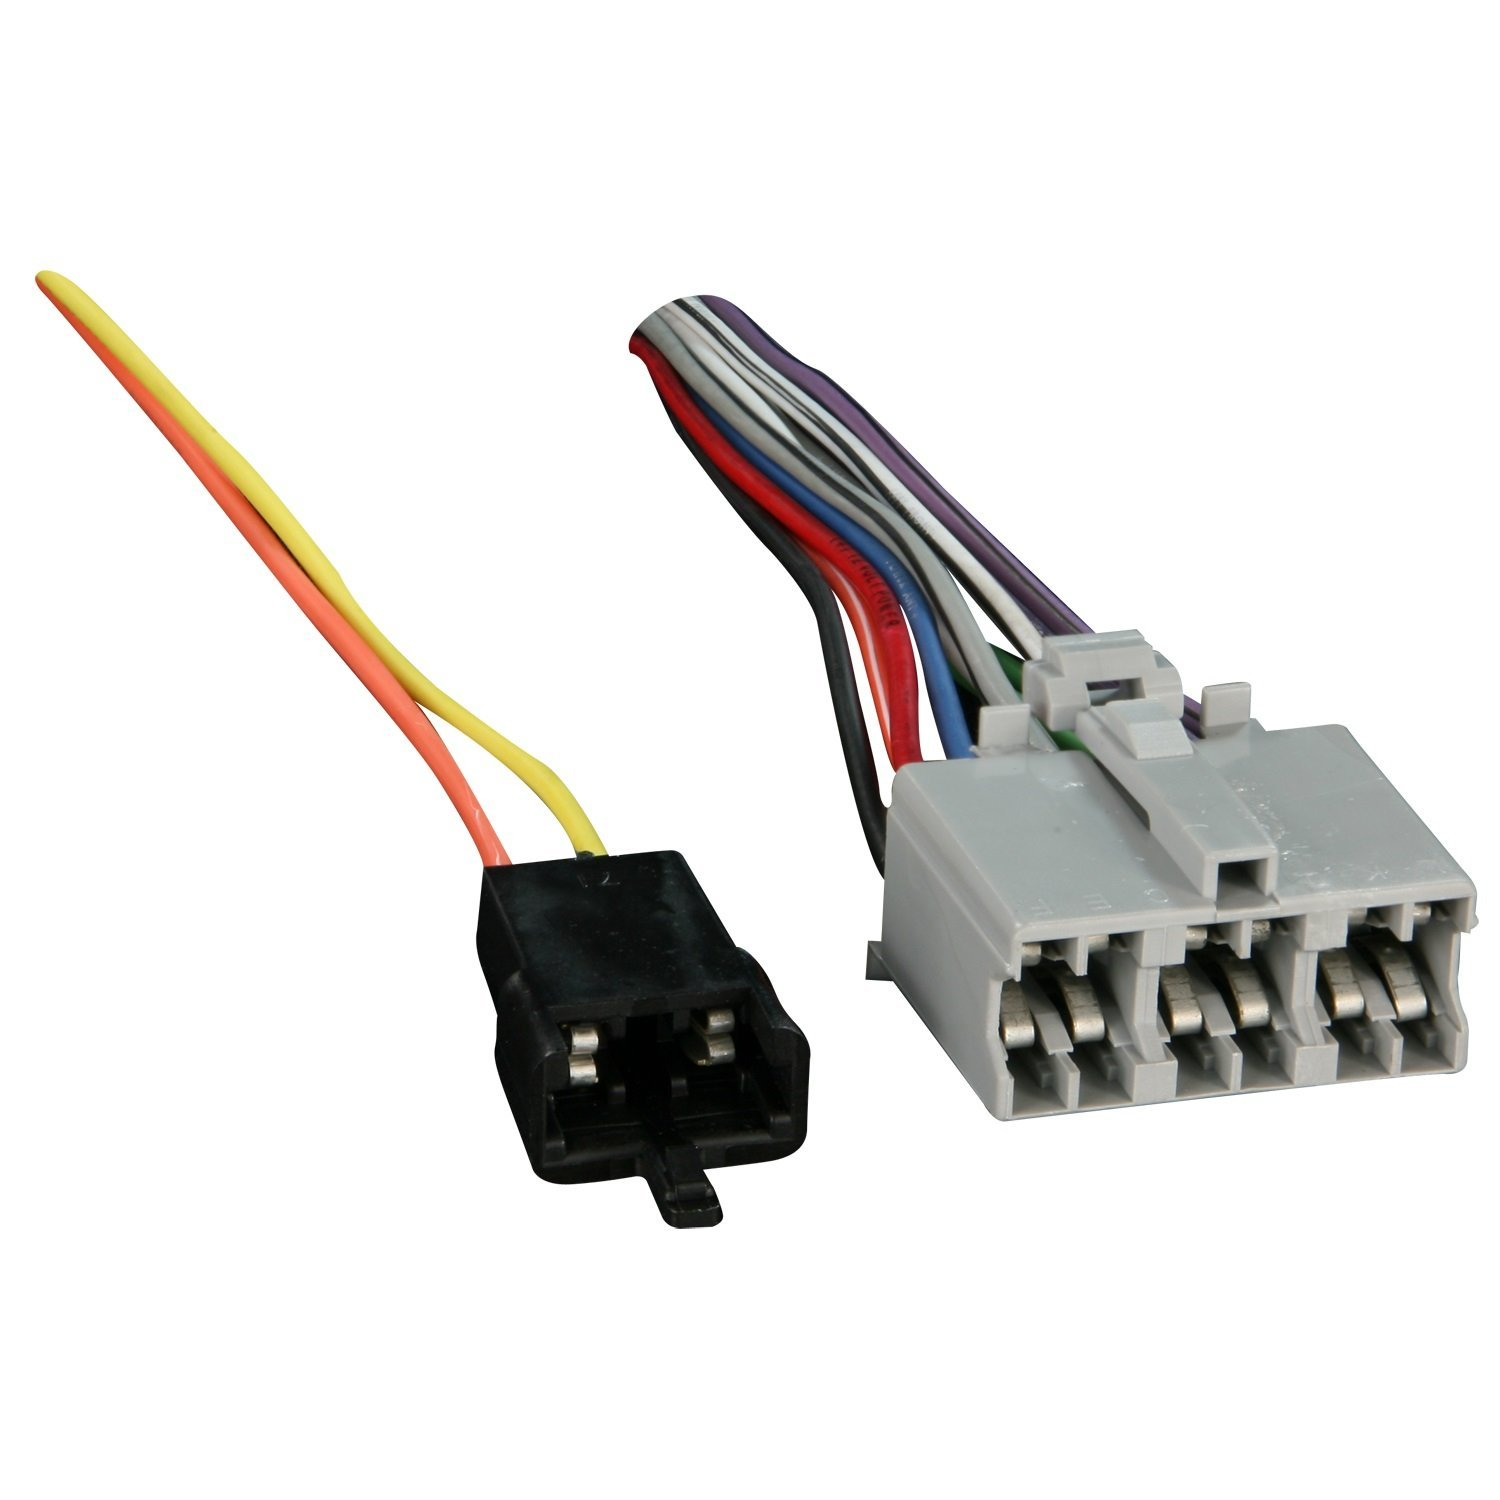 Reverse Wiring Harness Schematic Diagram Metra Mercedes 7116771 1973 1993 Gm Vehicles With 12 71